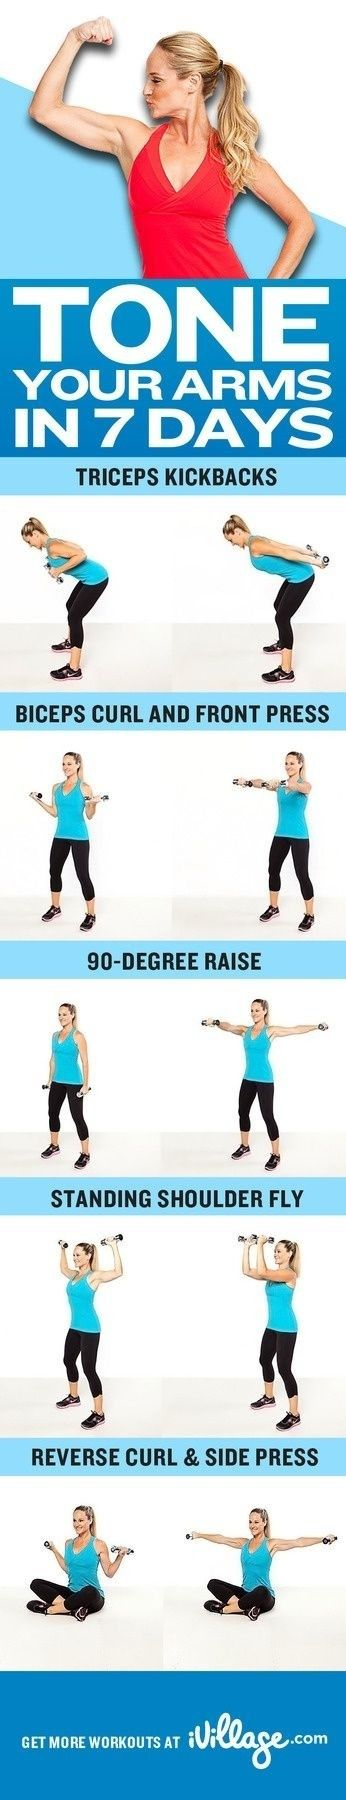 Armpit Fat ExcercisesThat little fat squishing out is bothering you too, right? Who's going to do this with me? Please like and follow!